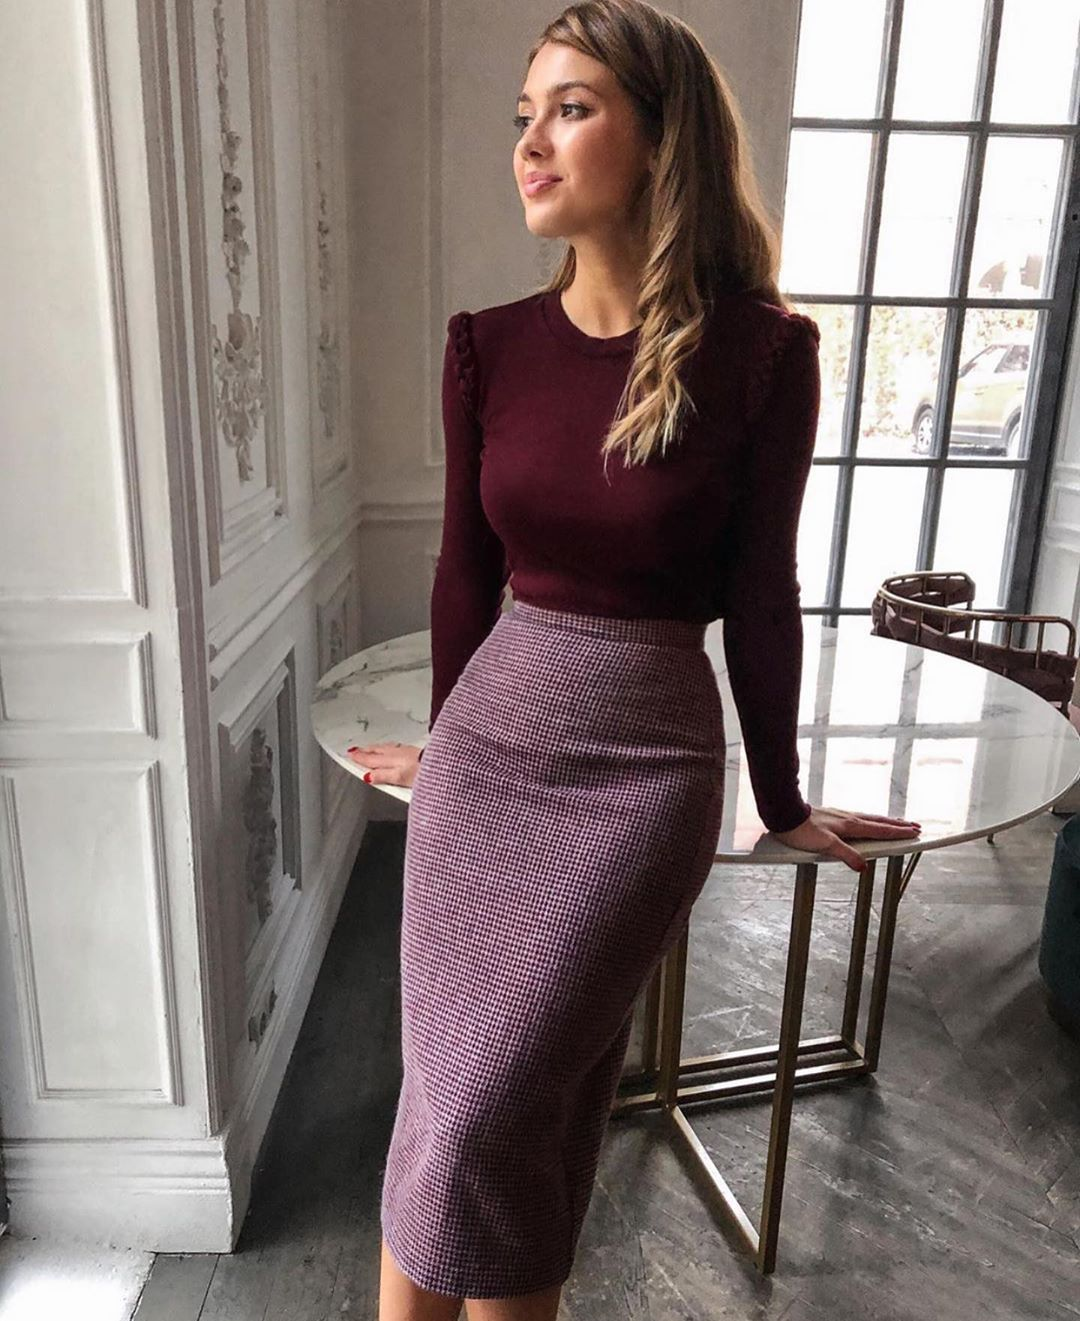 "Classy & Modest Fashion Inspo✨ on Instagram: ""Pencil skirt outfits"